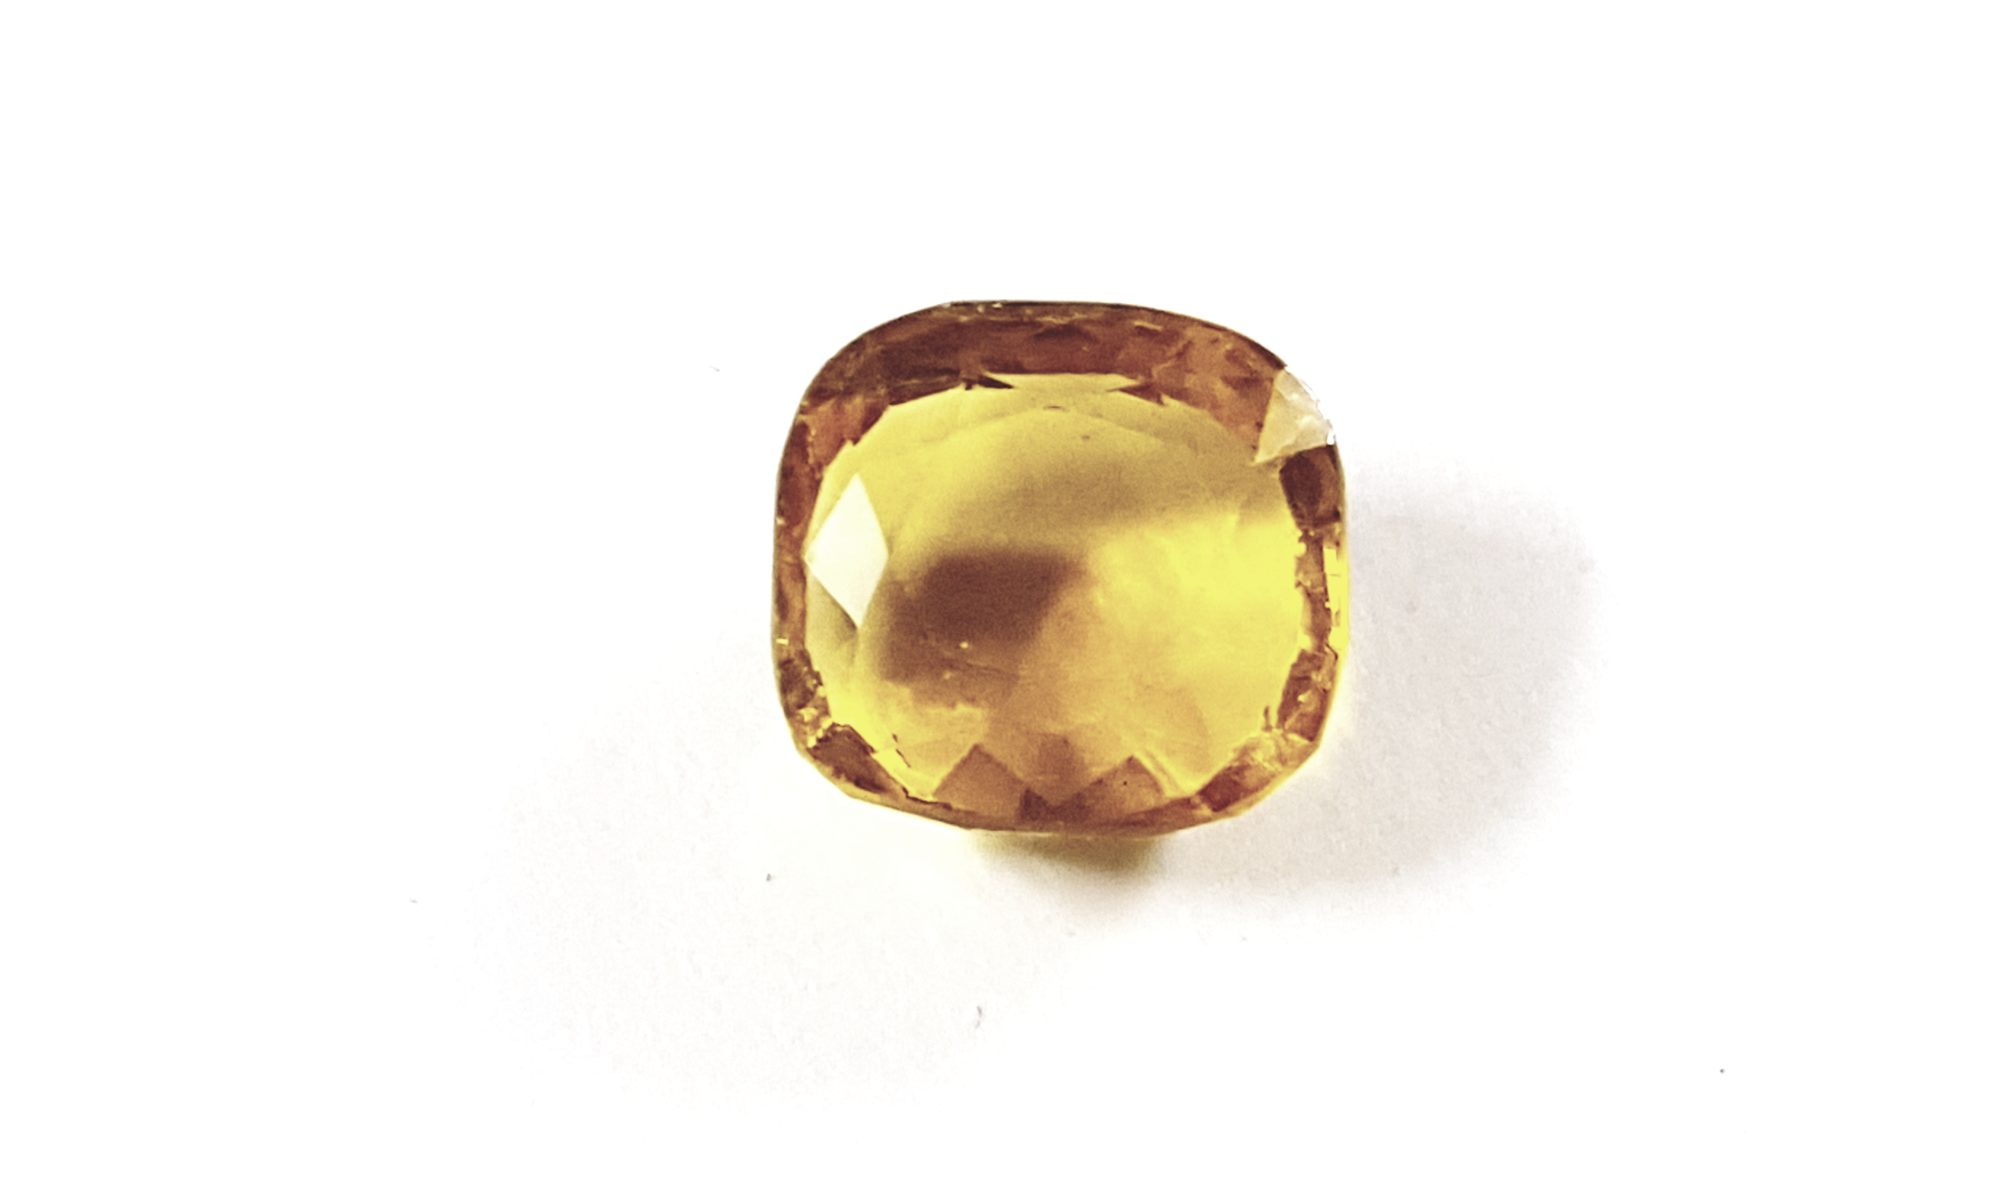 yellow flourspar or yellow florspar - rudraveda.com (9)